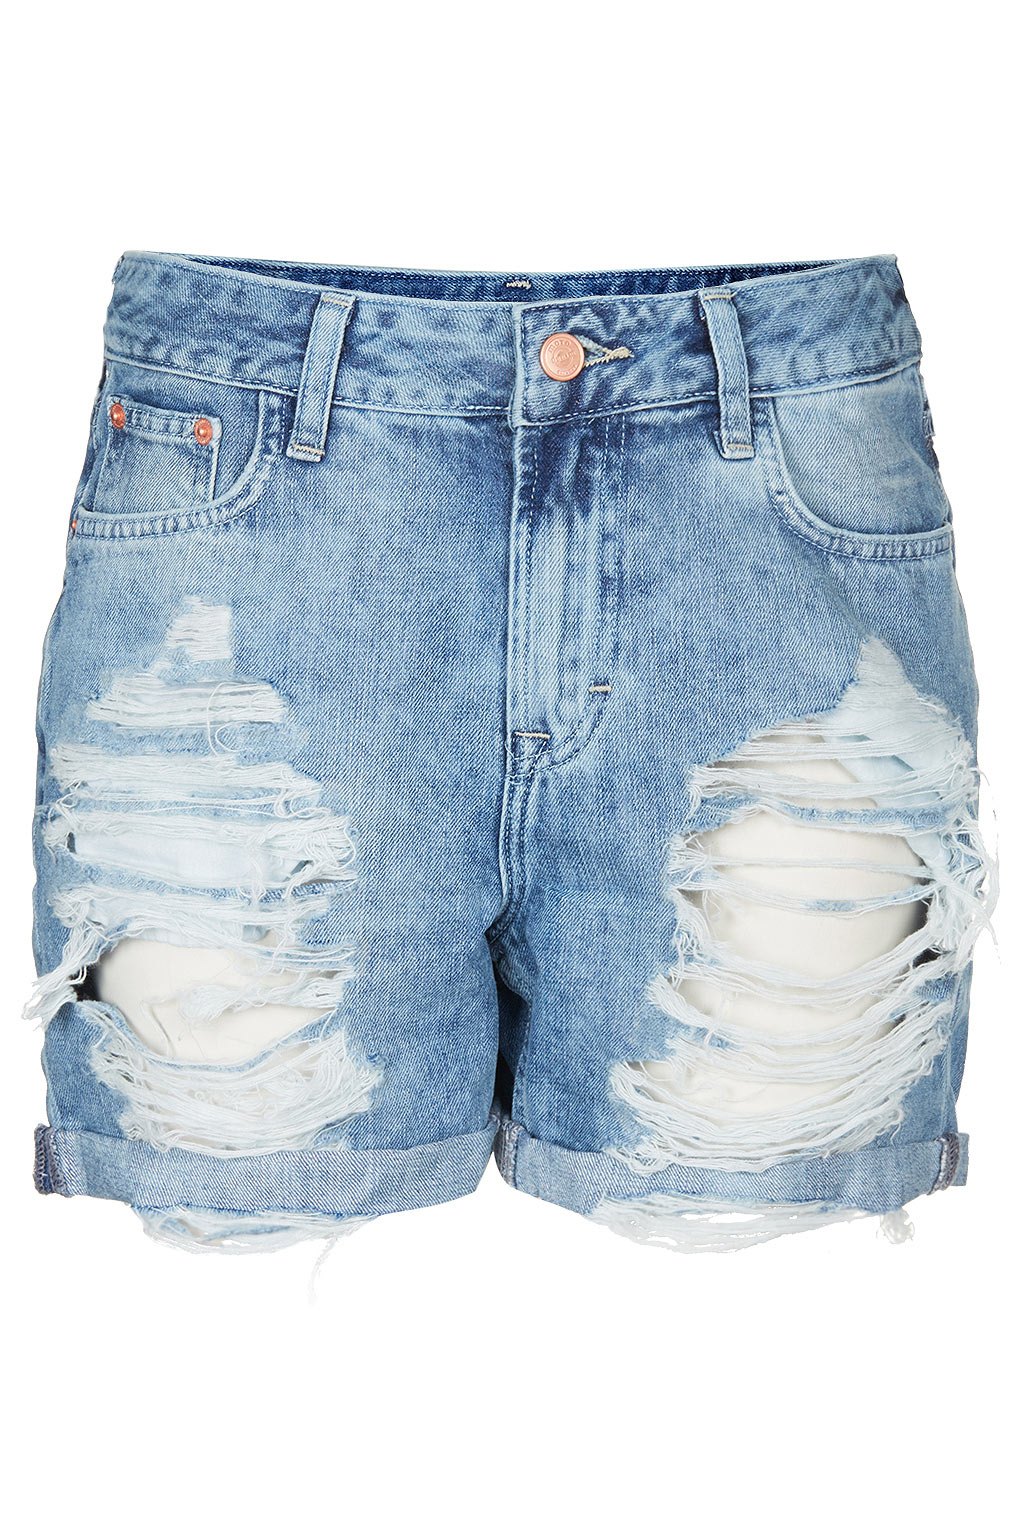 Women's Distressed Jeans. Distressed jeans are among the most popular trends in women's jeans. Distressed and ripped jeans for women provide an easy way .